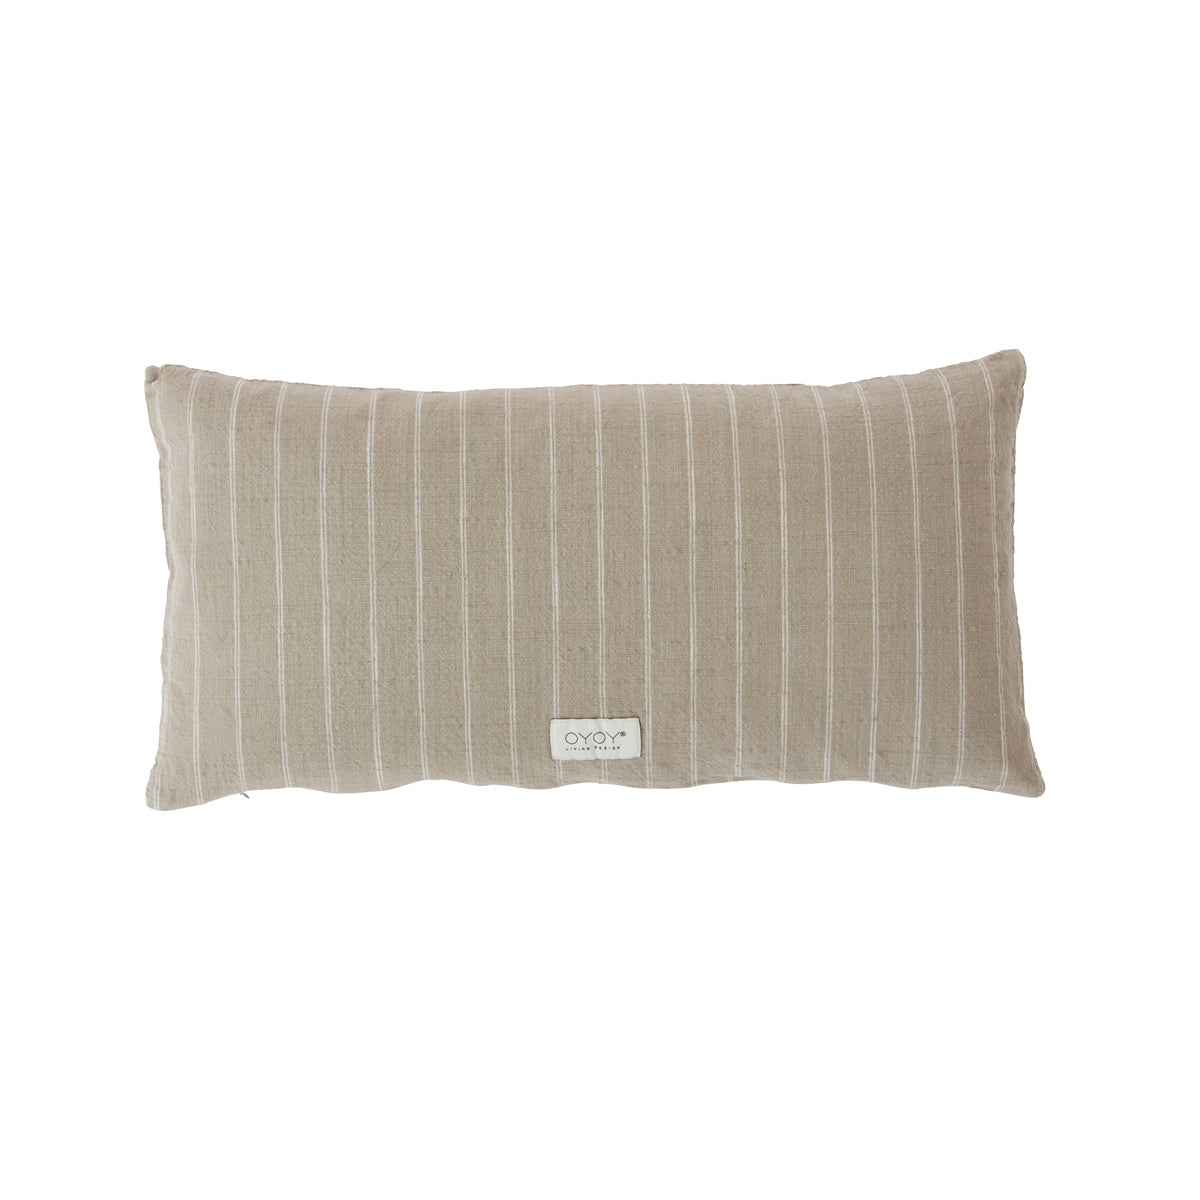 OYOY Living design Cushion Kyoto Long - Clay